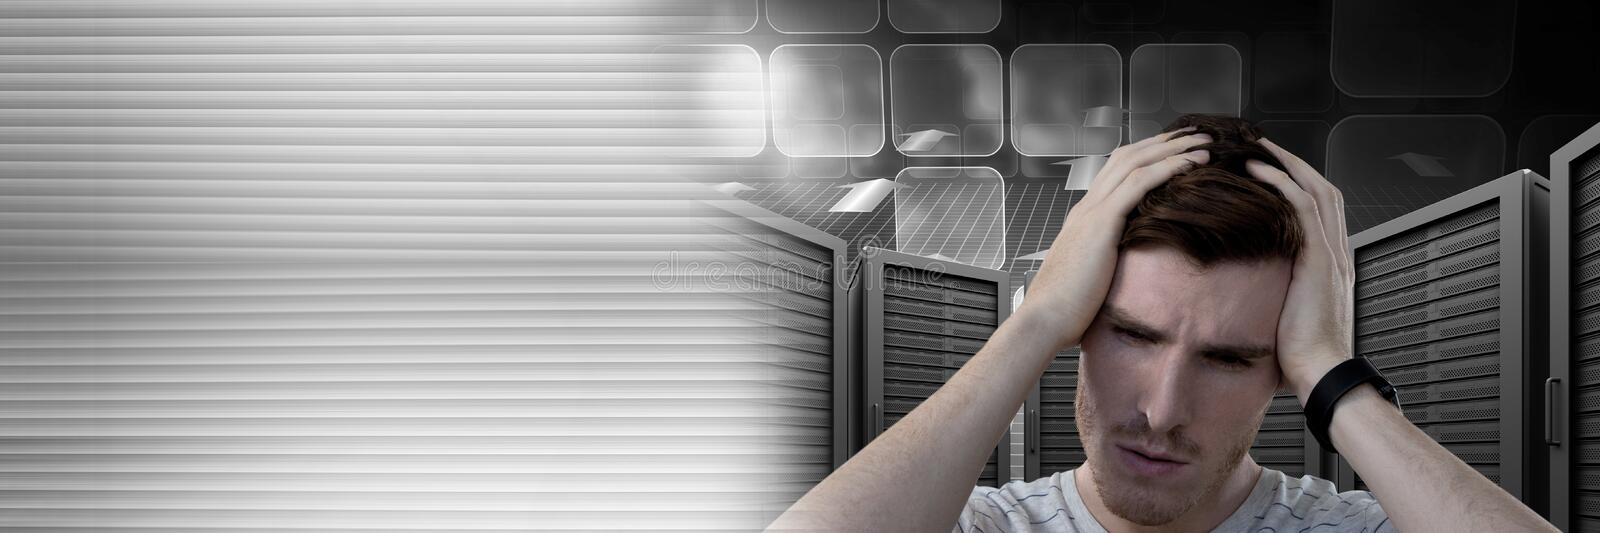 Man with computer servers and technology information interface transition royalty free stock images